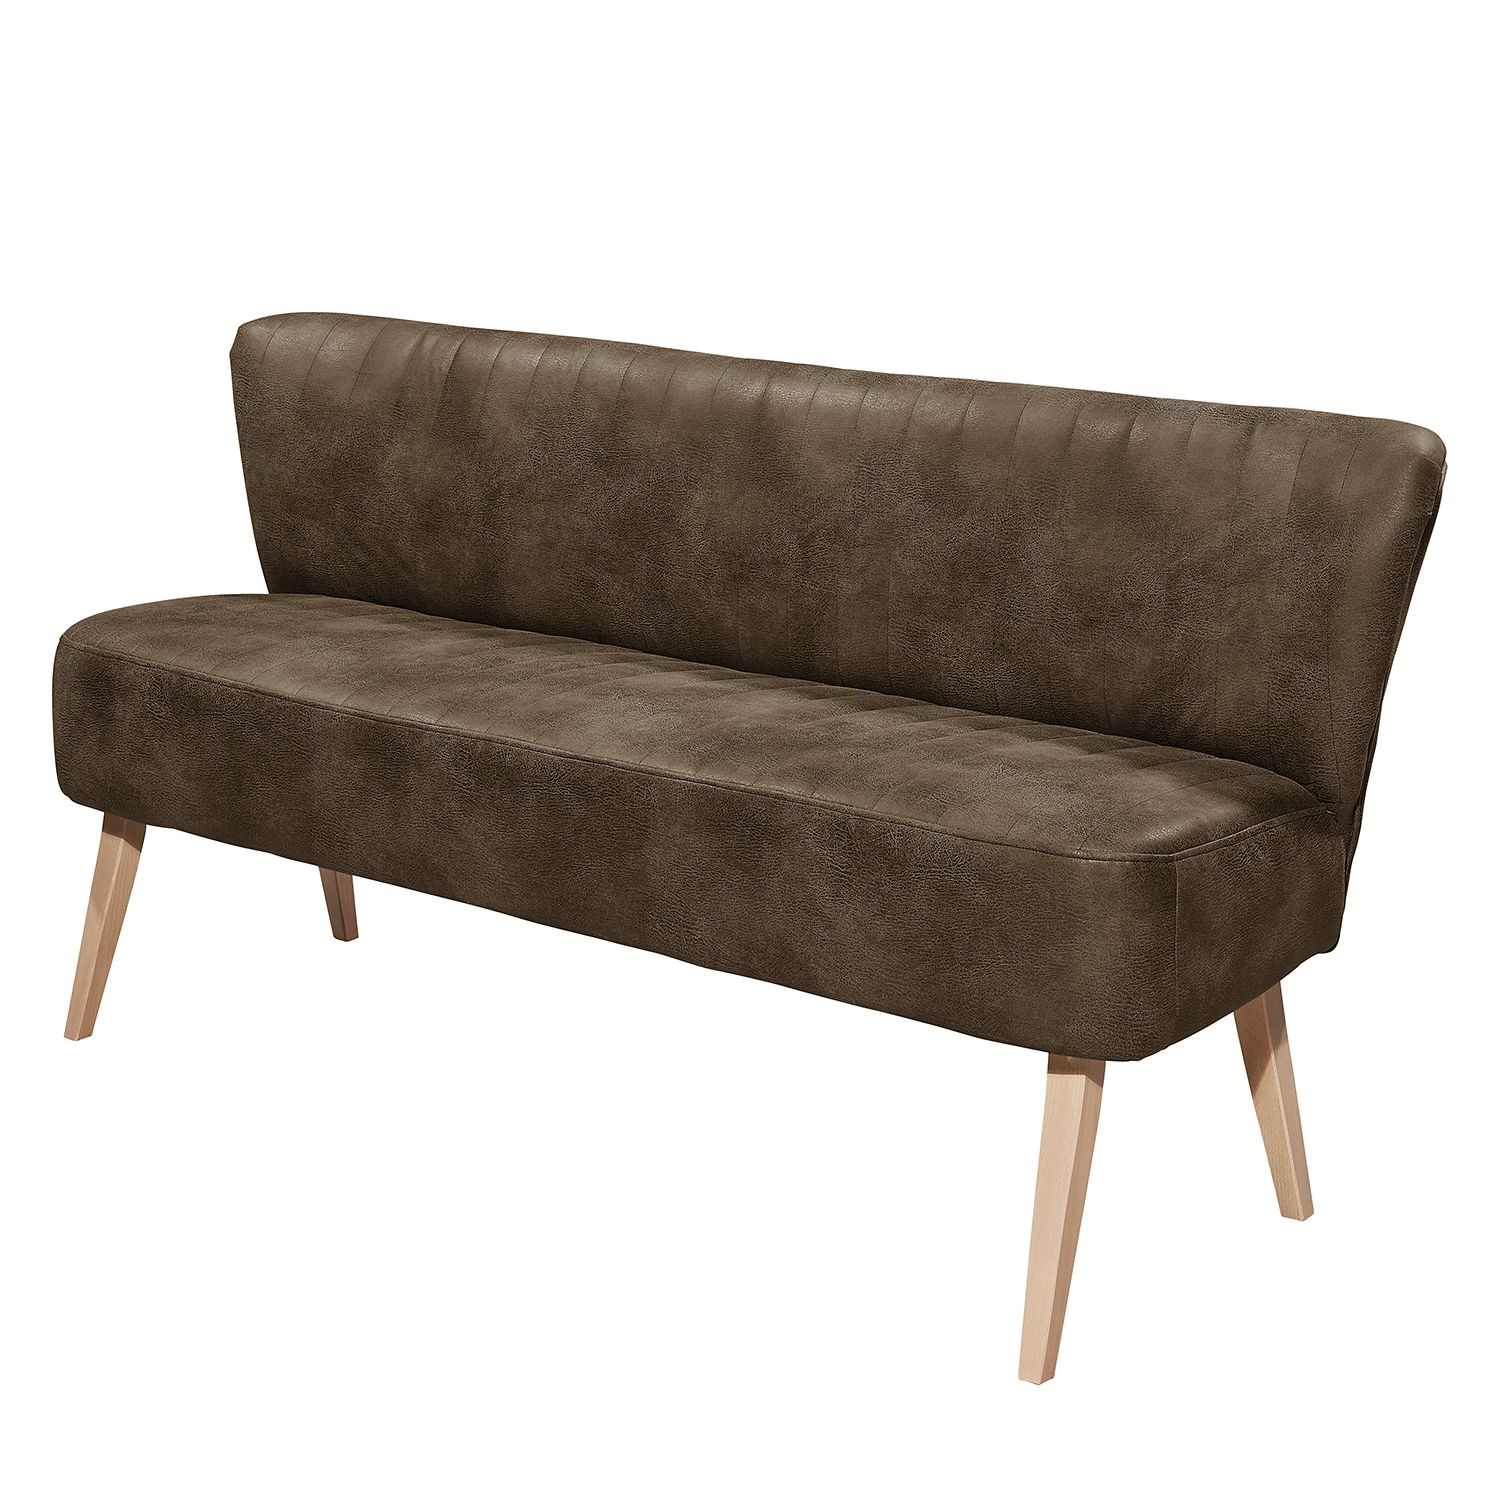 Sofa Rotnes (3-Sitzer) - Antiklederlook - Buche Natur - Havanna, mooved